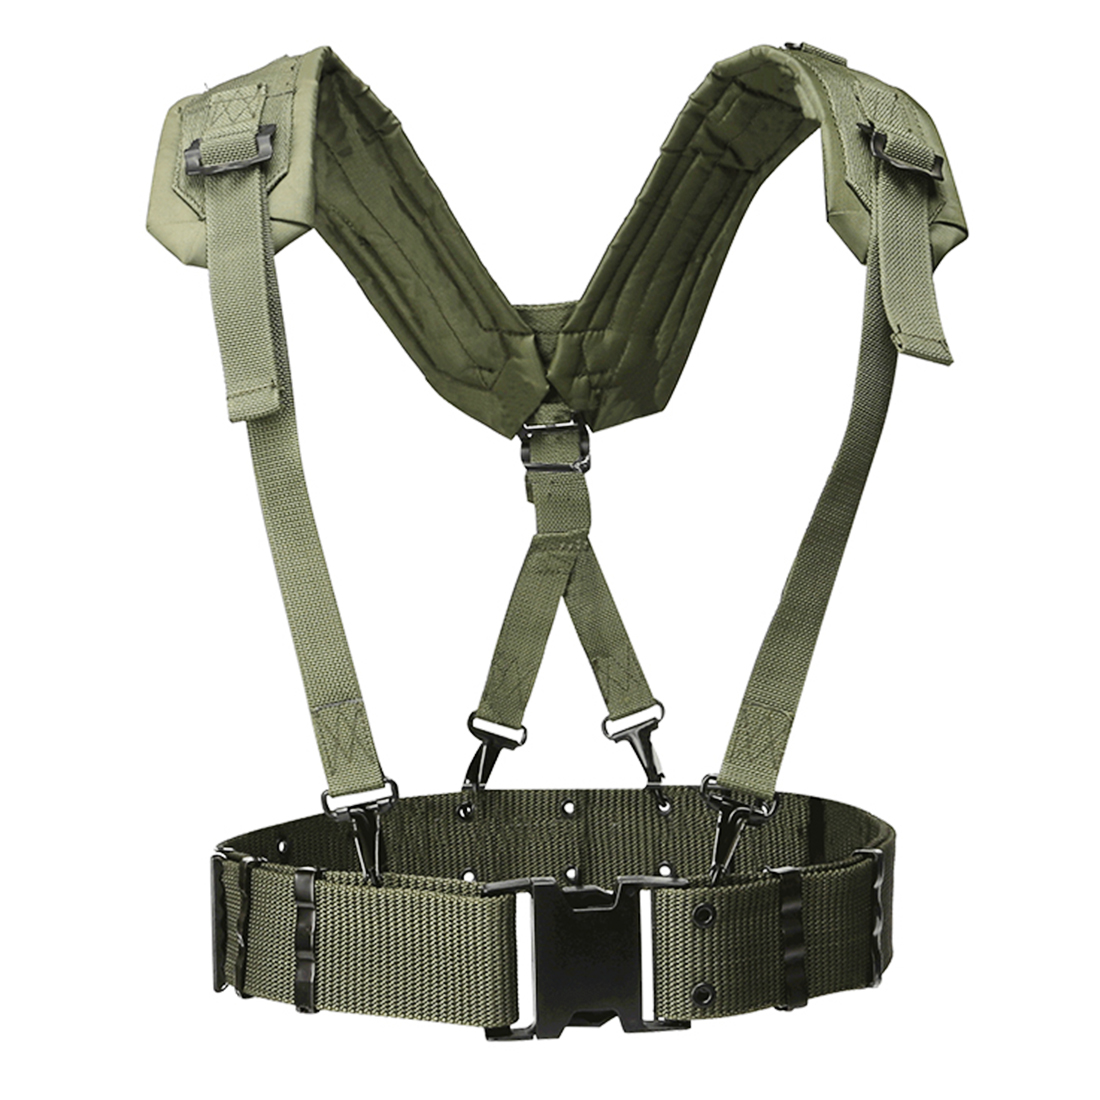 HTB1ybpga0jvK1RjSspiq6AEqXXaT - HS Adjustable Tactical Lightweight Waist Belt Harness Set for Outdoor Military Shoulder Waist Protective Band for Adult